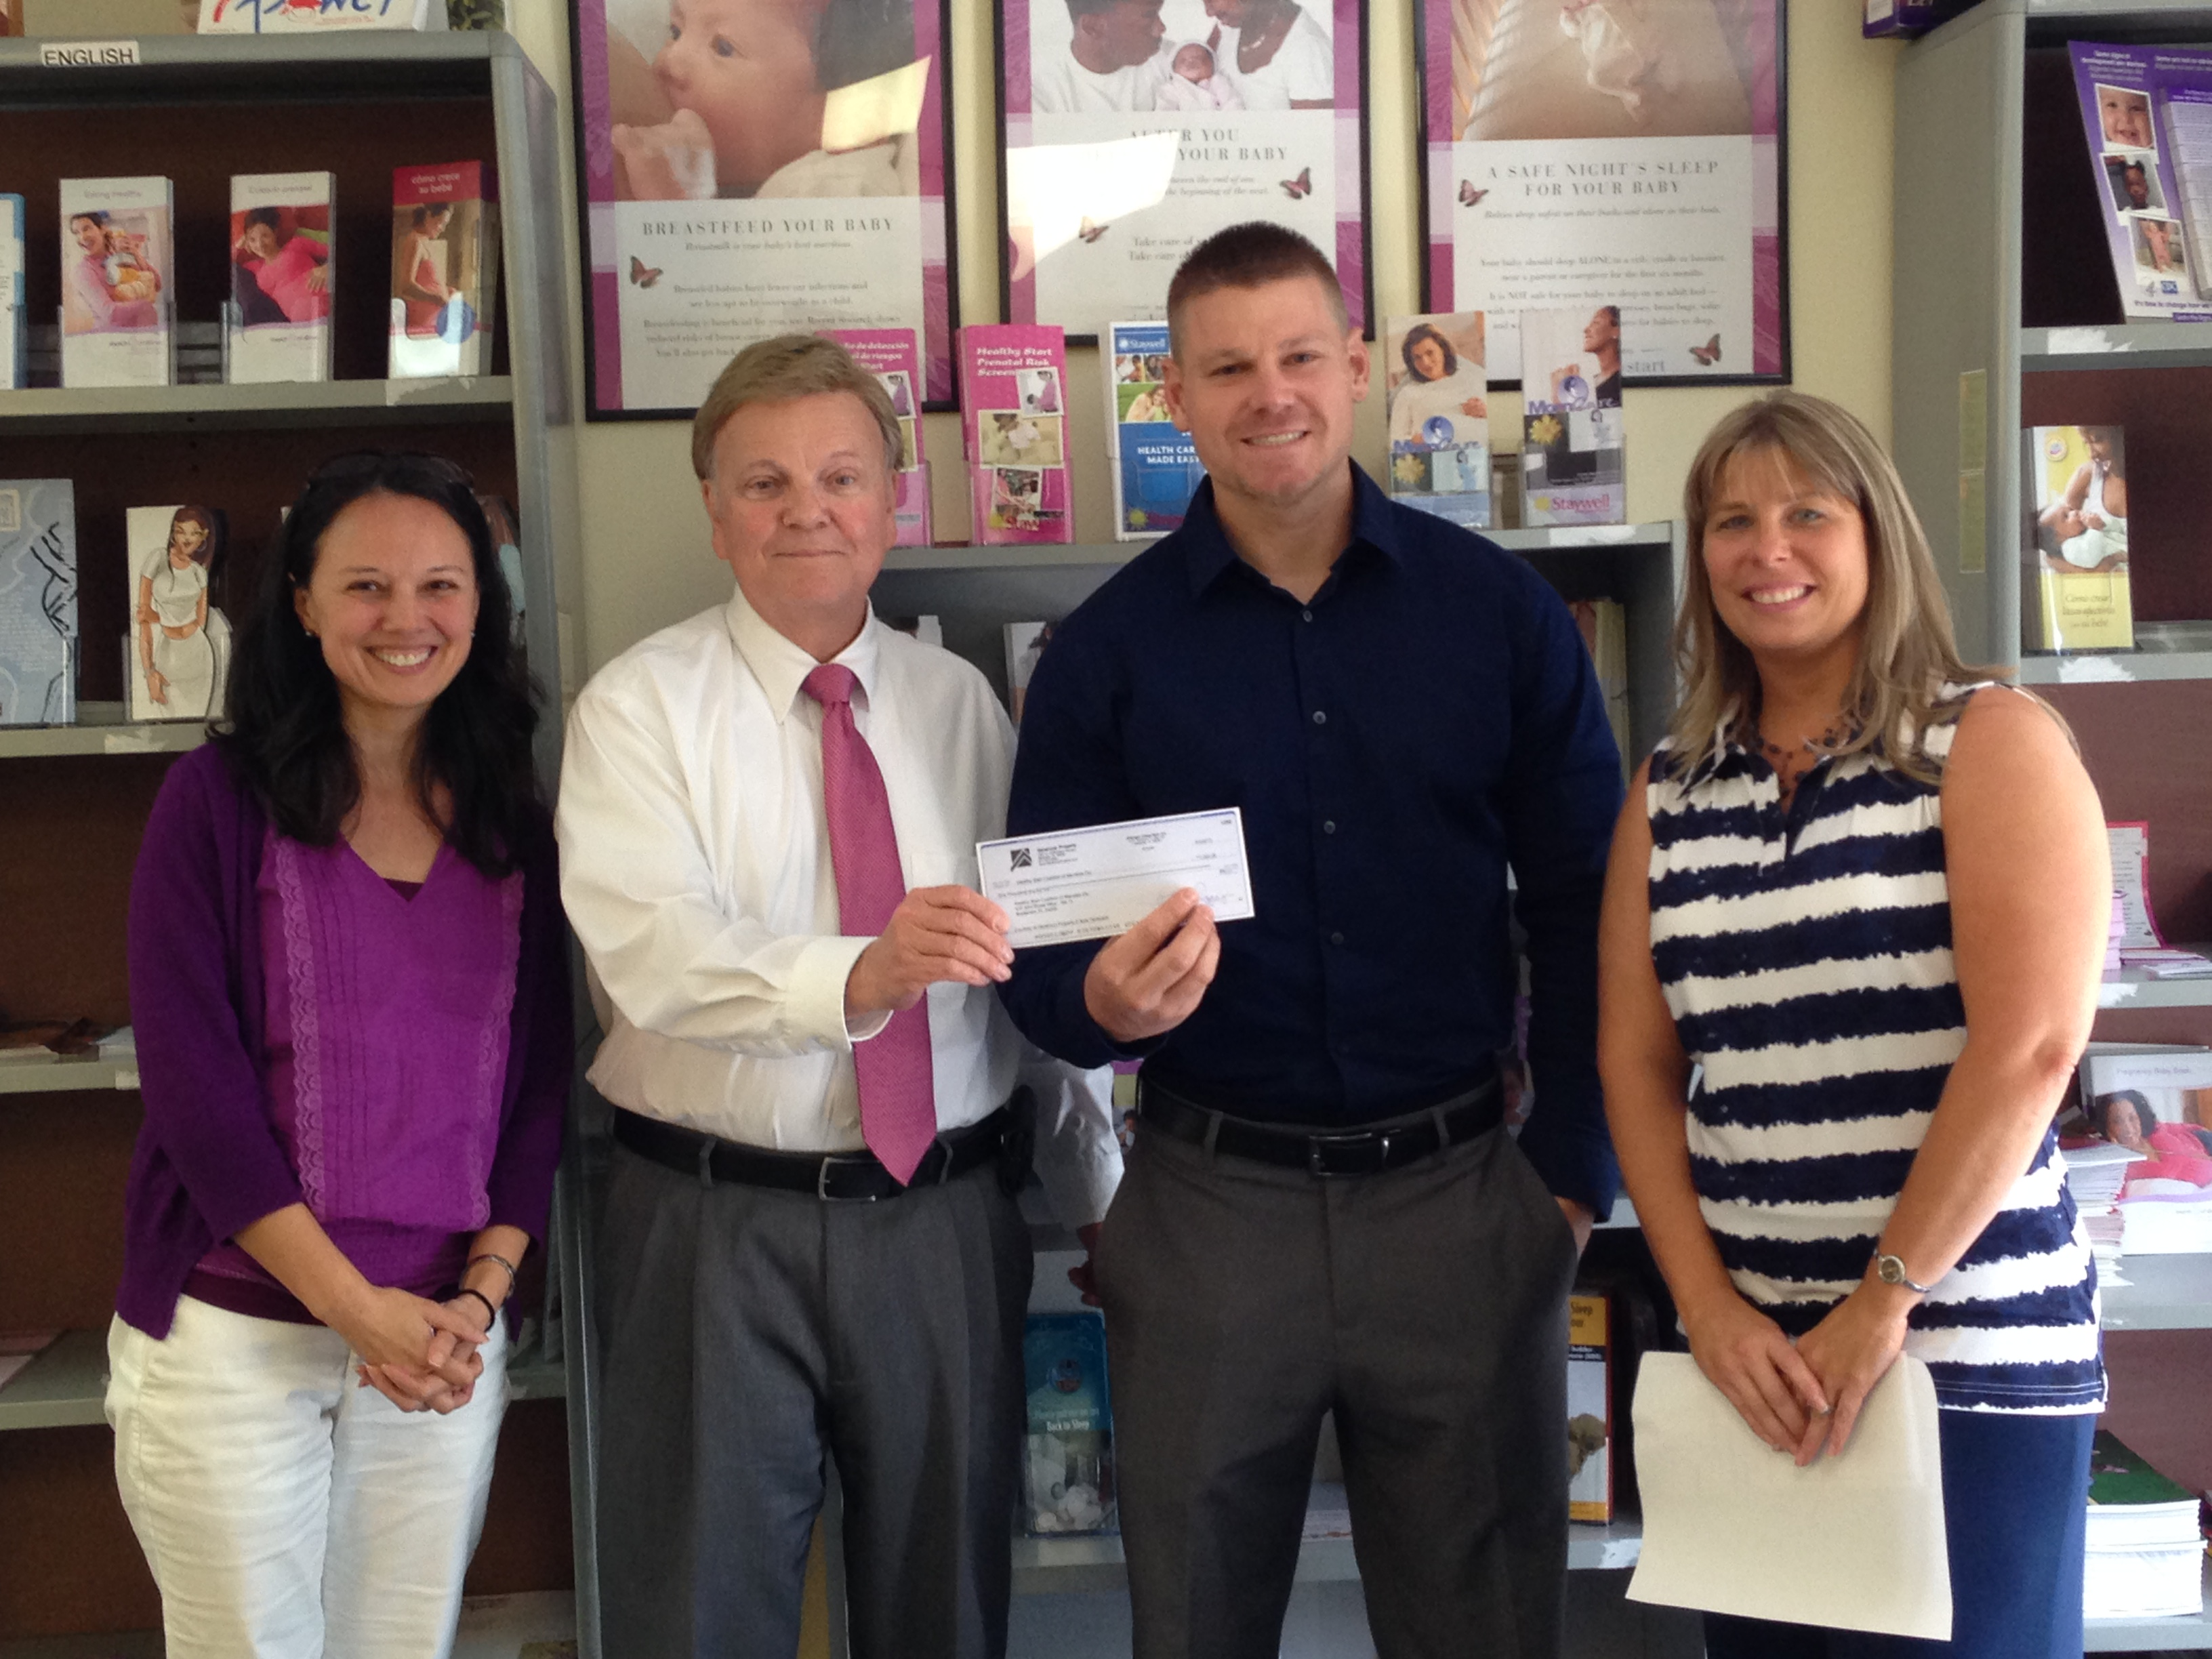 Manatee charity recevies donation From Sarasota Real Estate Brokerage